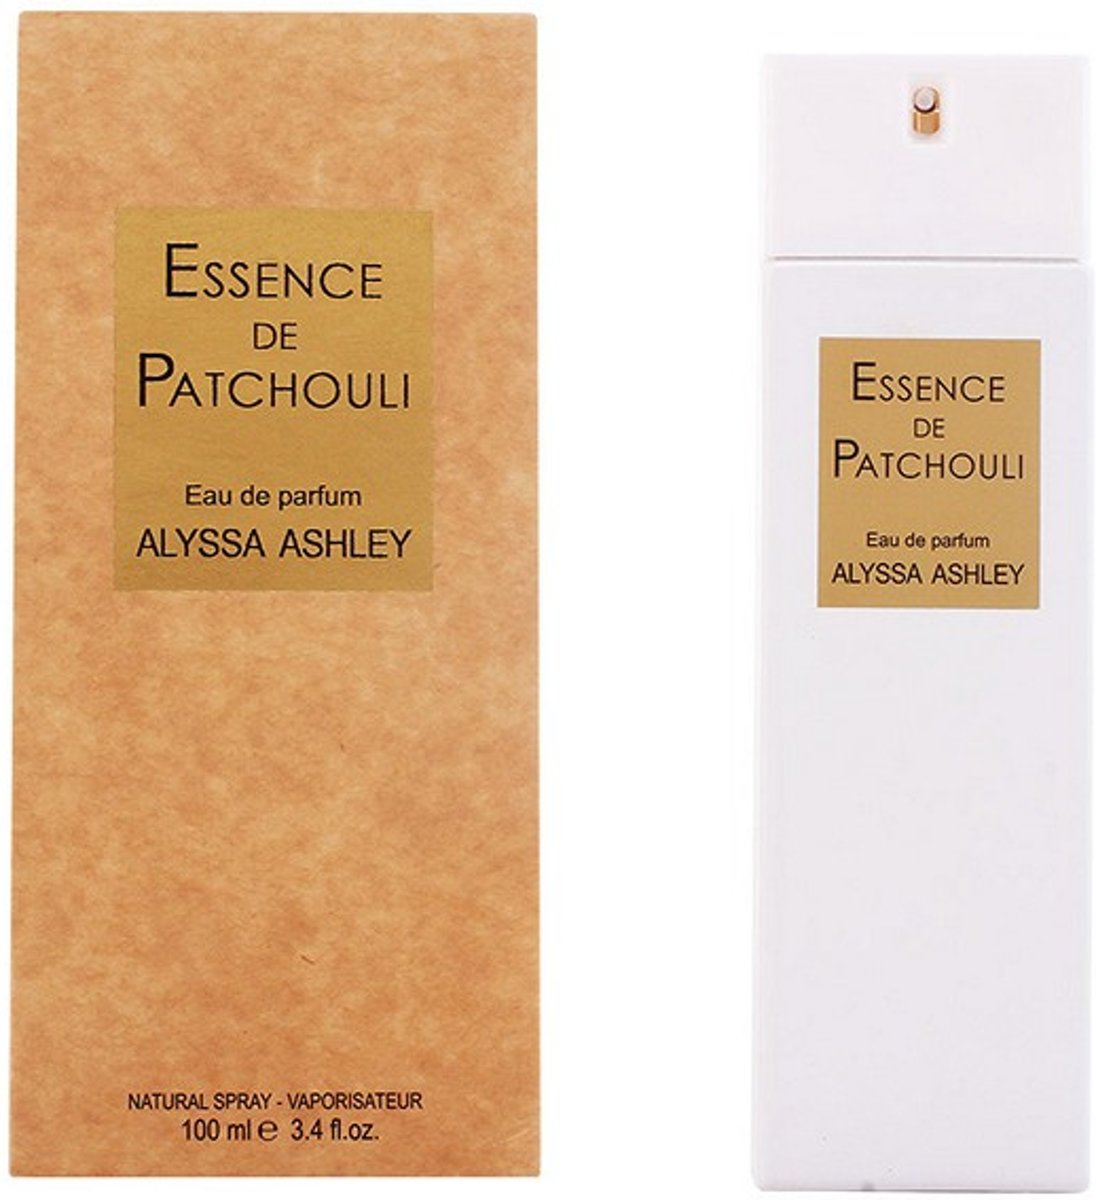 ESSENCE DE PATCHOULI edp verstuiver 100 ml